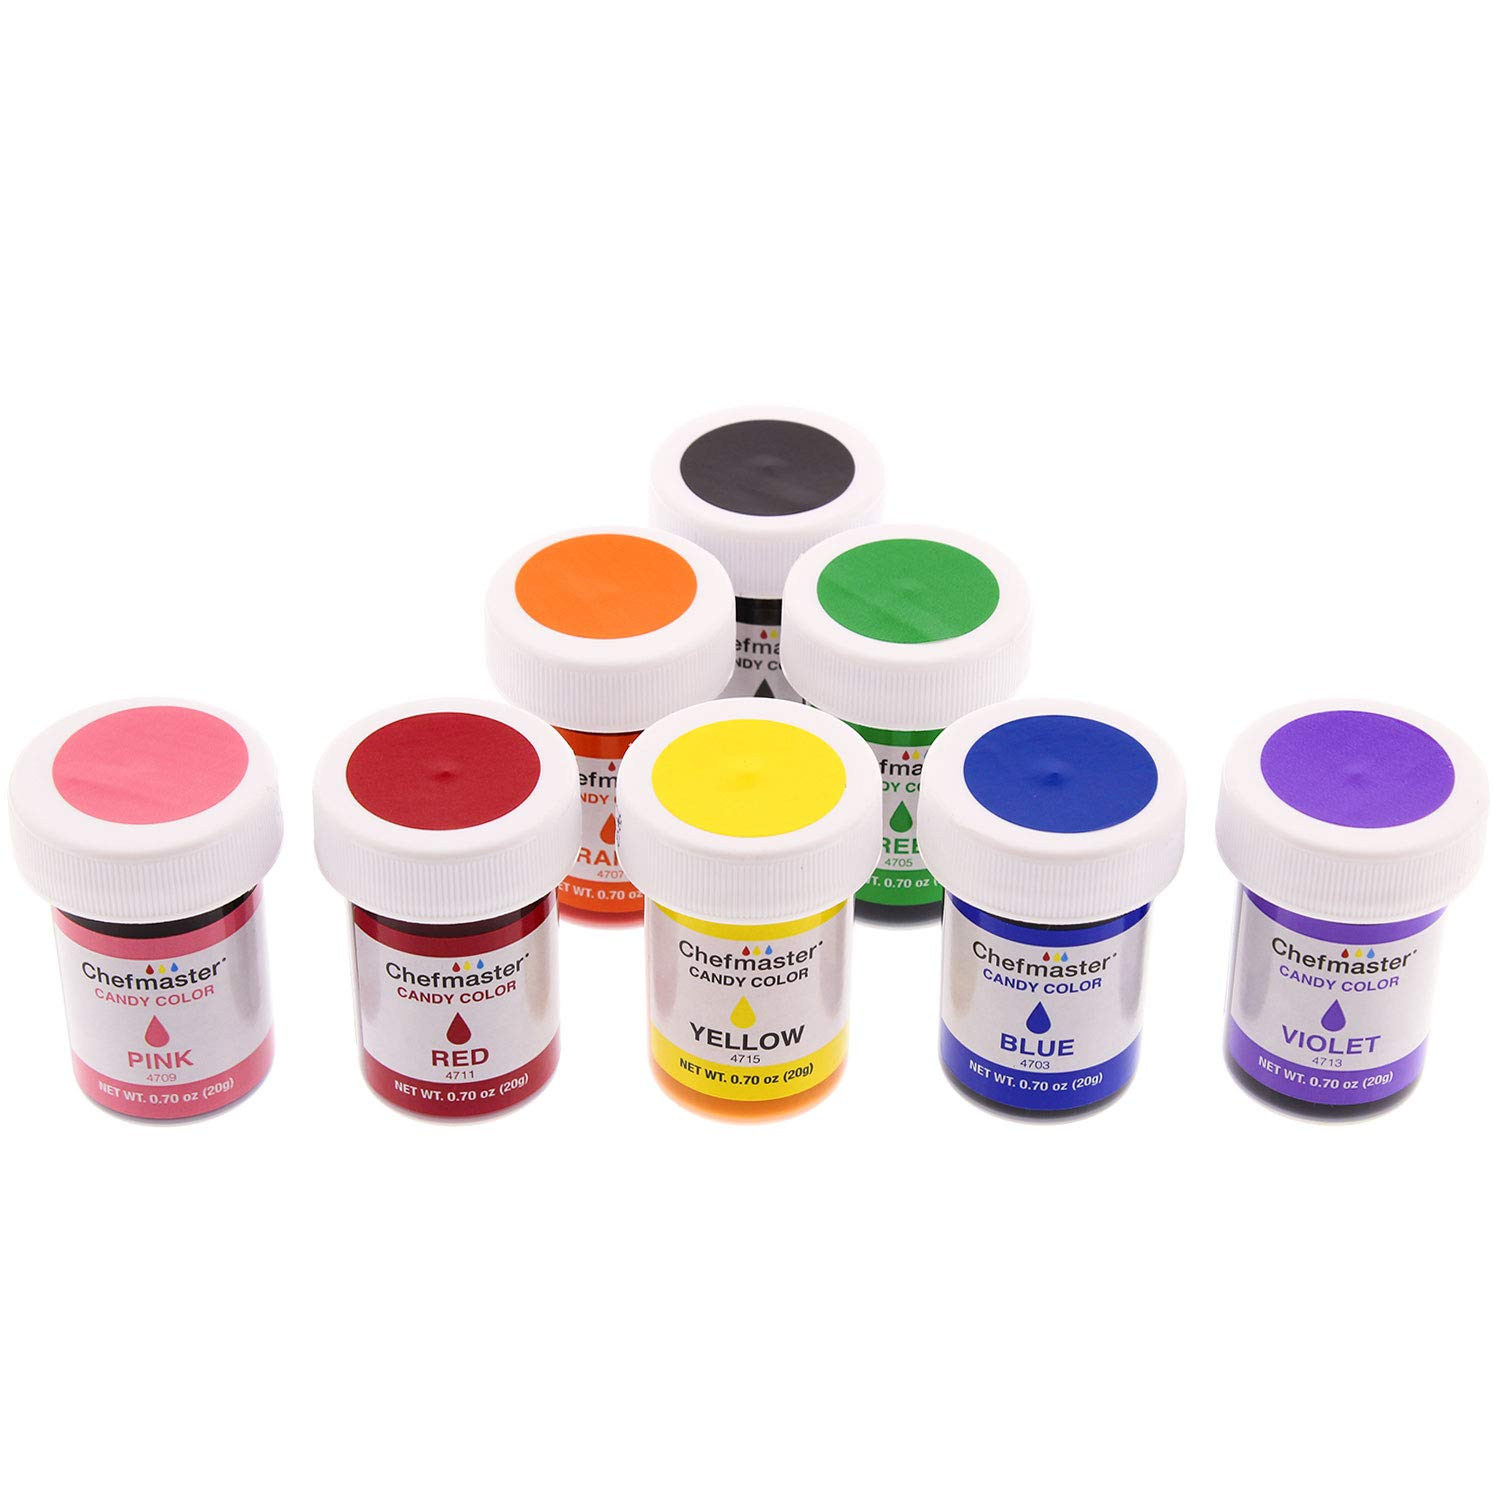 U.S. Cake Supply 8 Bottle Set of 20-gram Liquid Candy Food Color with Color Mixing Wheel by U.S. Cake Supply (Image #2)